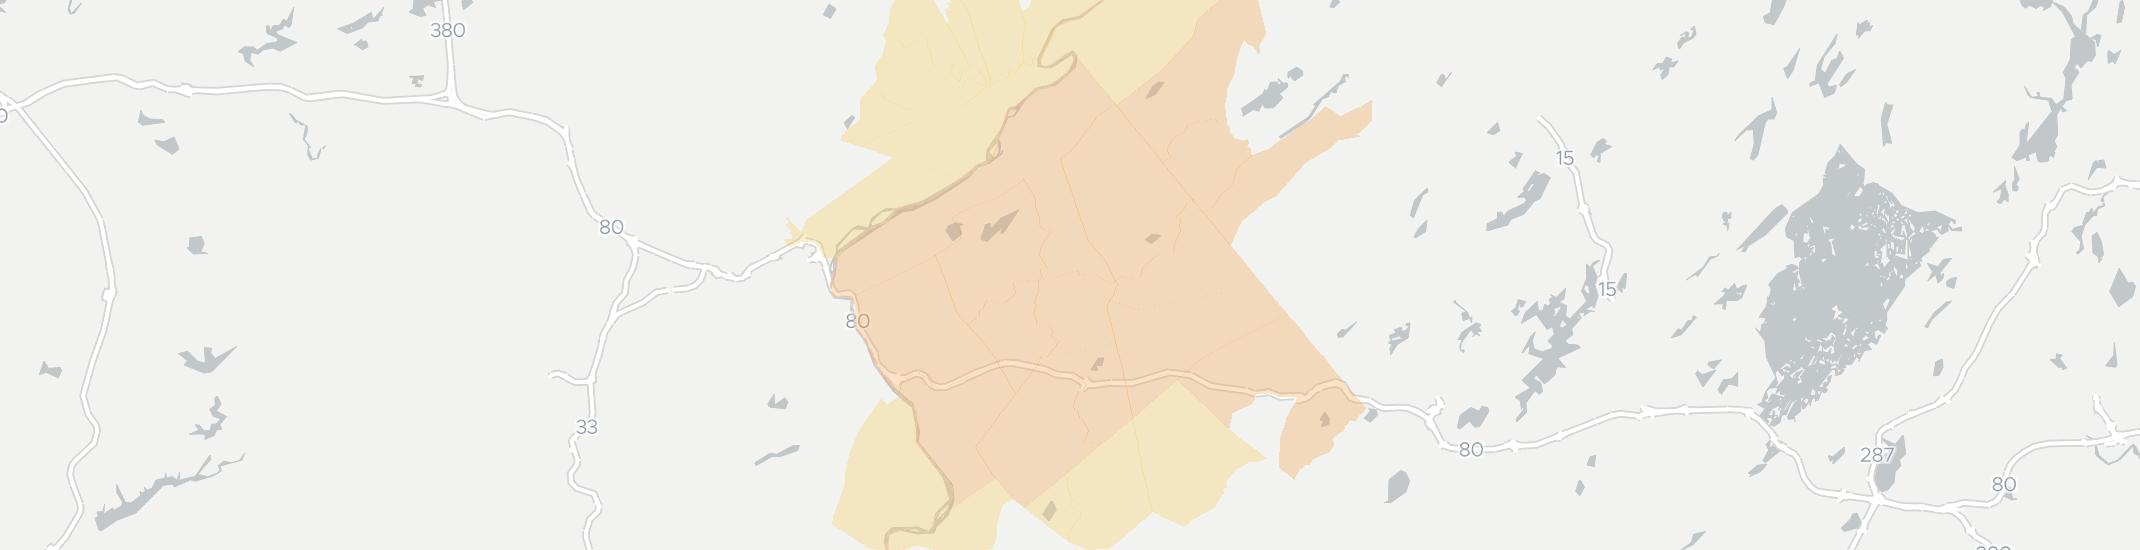 Blairstown Internet Competition Map. Click for interactive map.